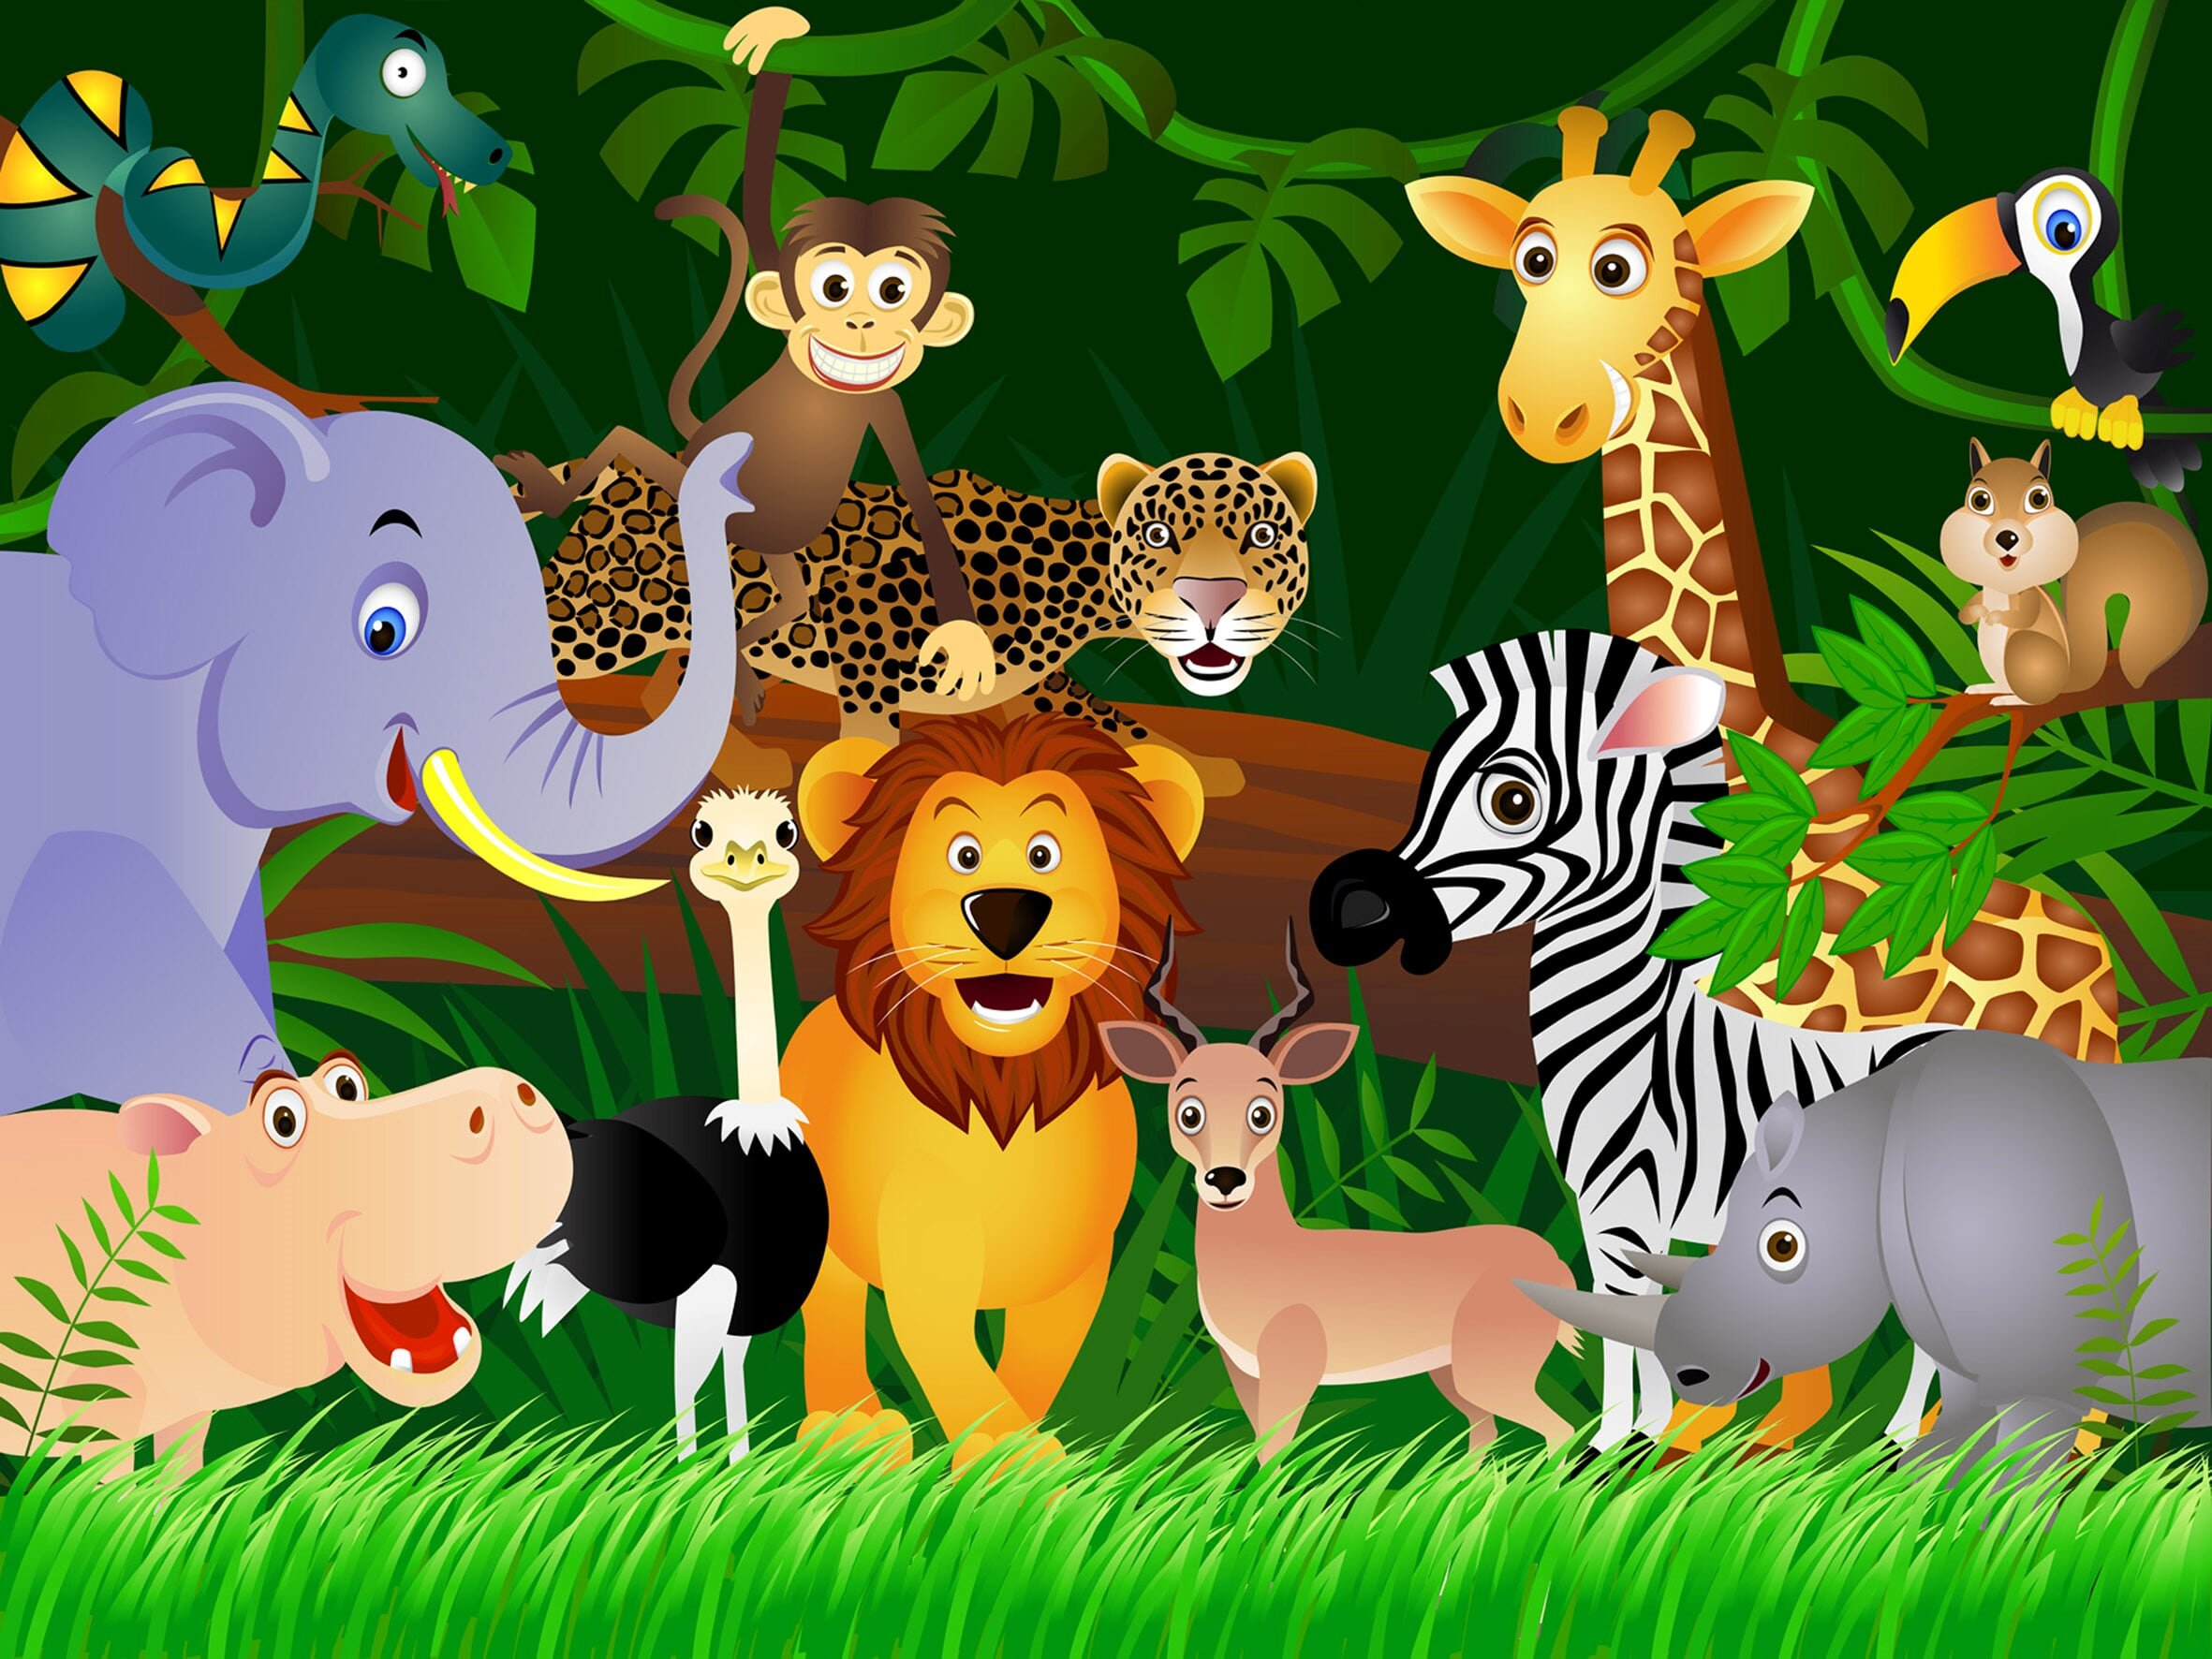 Cartoon Jungle Animals Wall Mural Non-Woven Photo Wallpaper MADE in EUROPE for Kids Bedroom Playroom, 11'10''(H) x 8'10''(V) (360x270 cm)